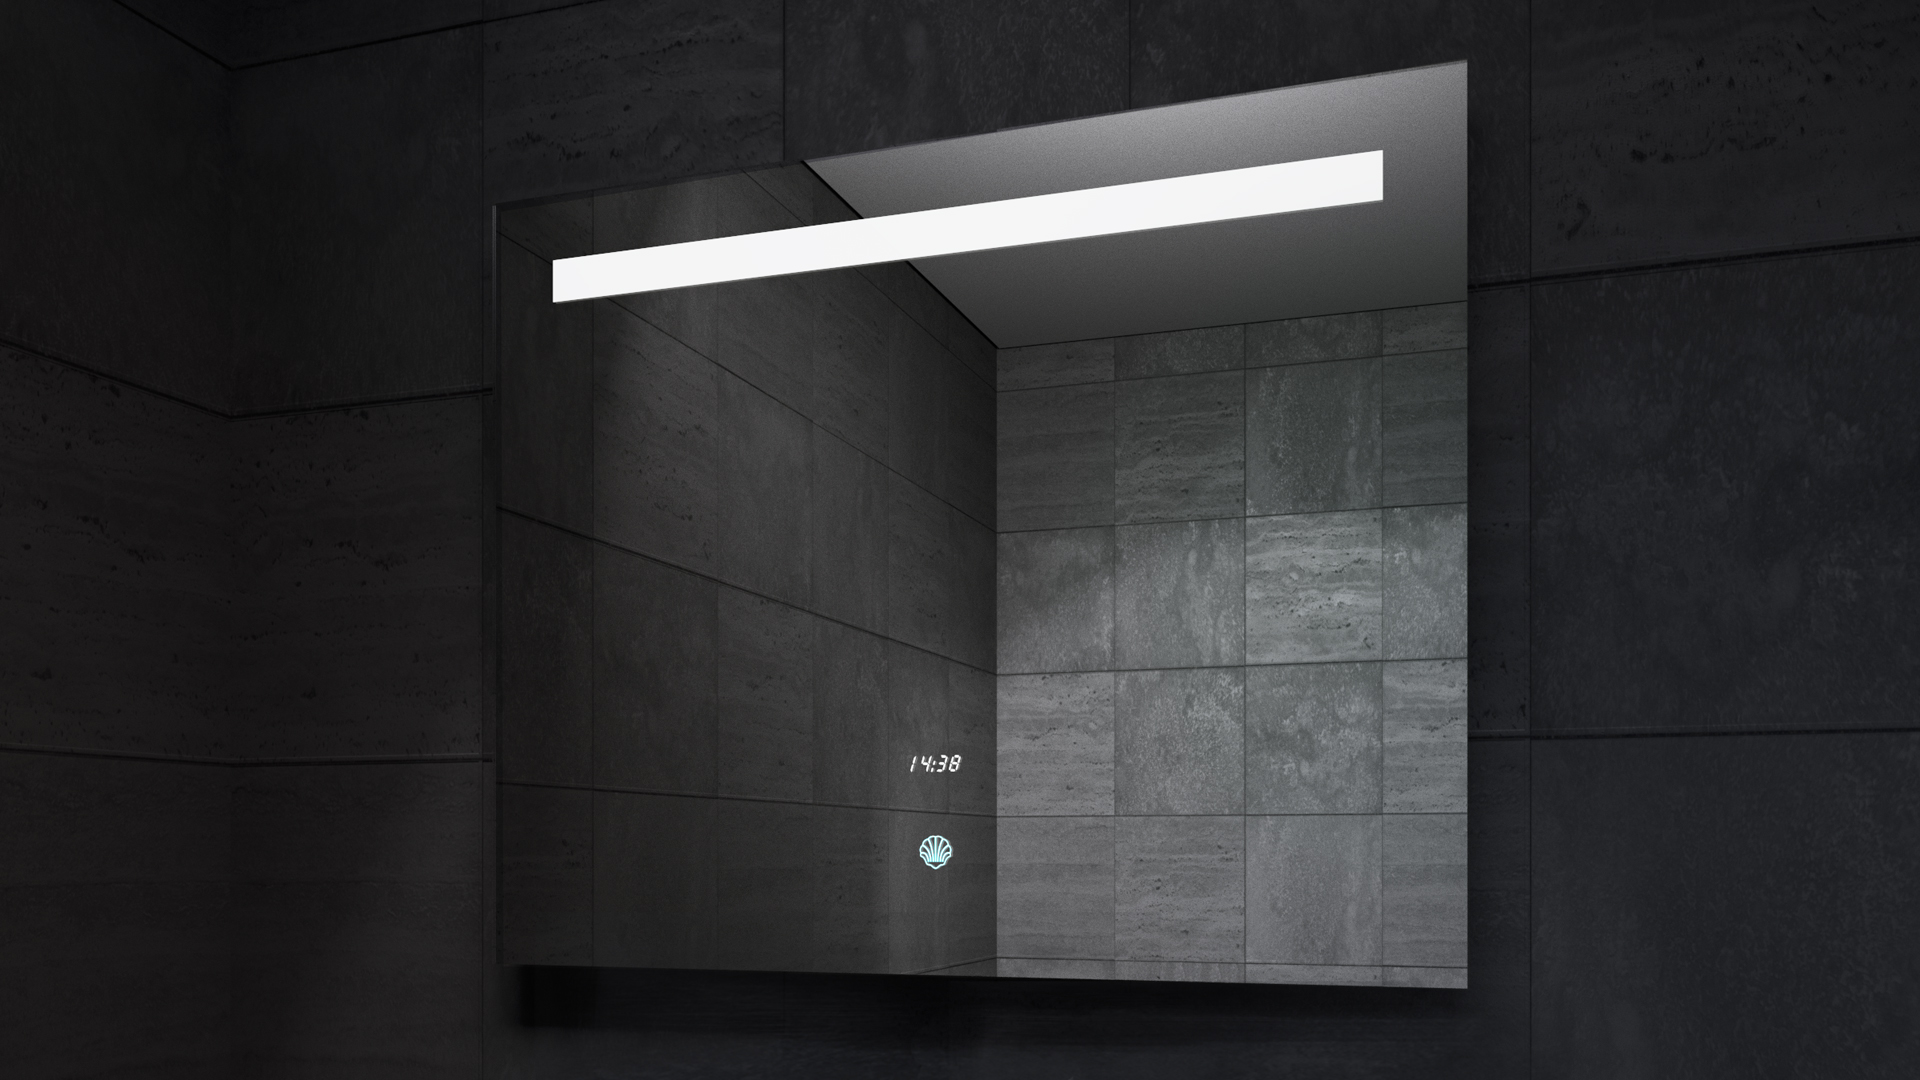 Deluxe LED Mirror in Darkness